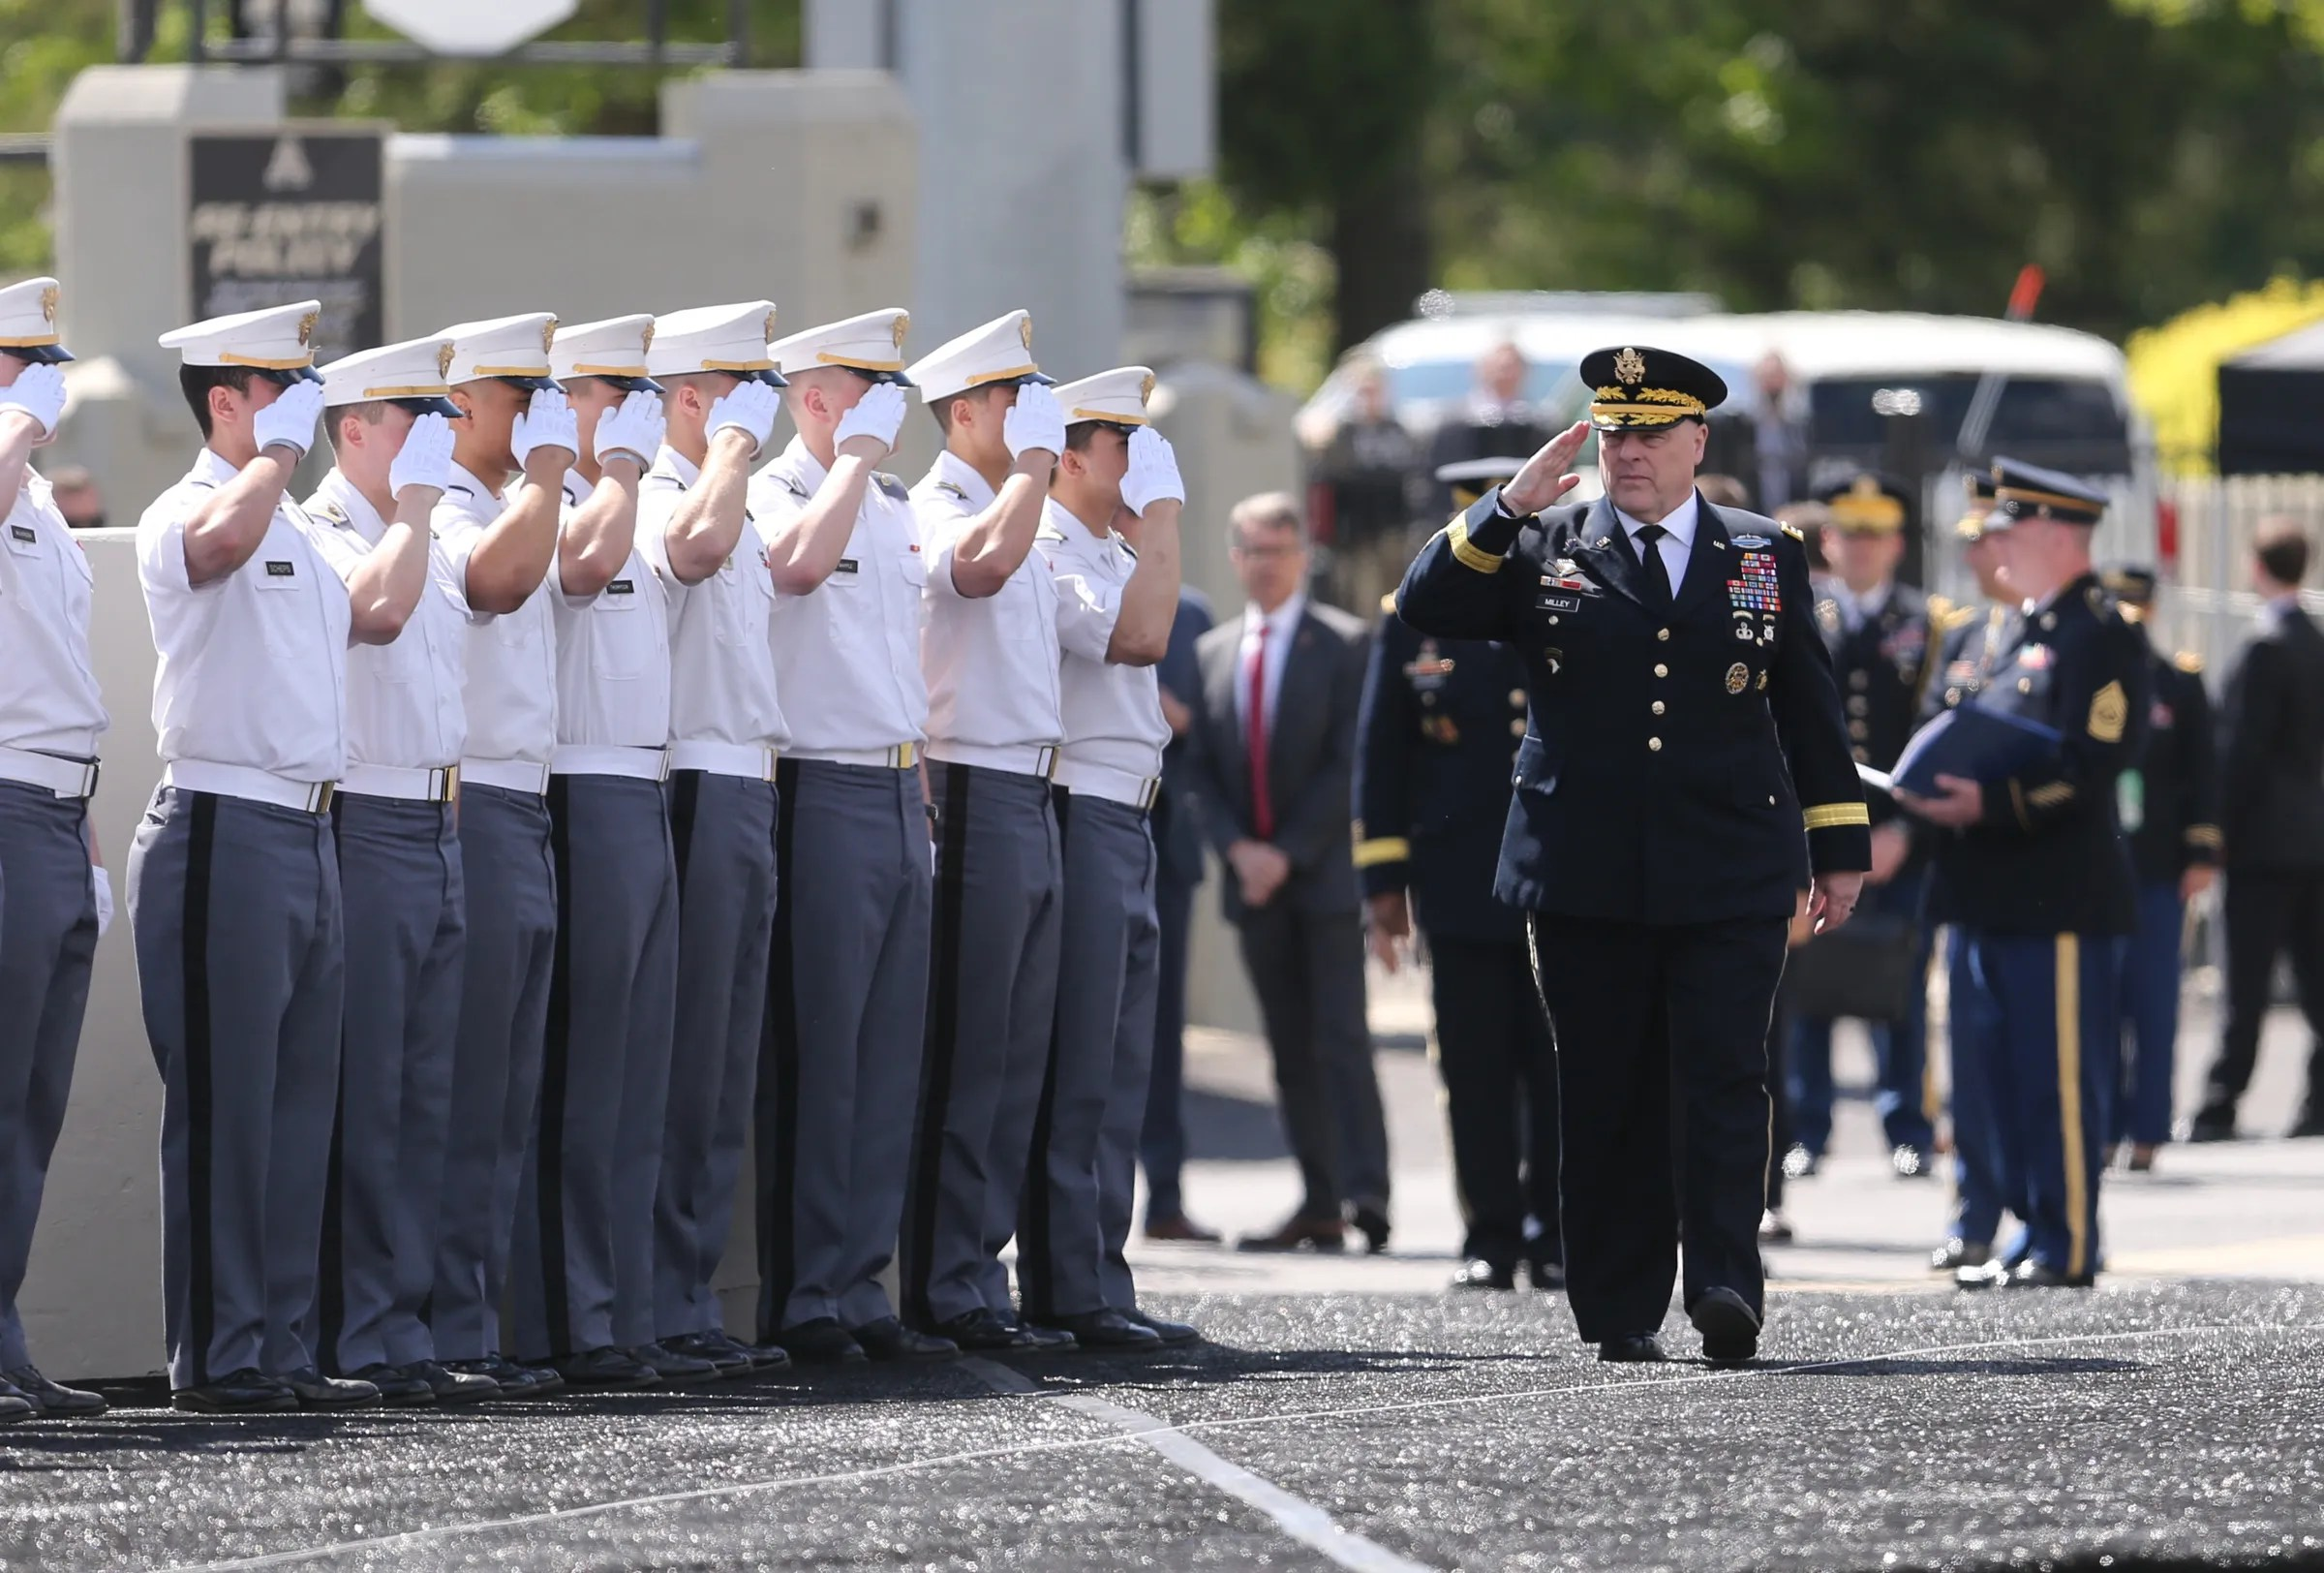 Then Army Chief of Staff Gen. Mark Milley (now chairman of the Joint Chiefs of Staff) enters Michie Stadium for the 221st graduation and commissioning ceremony at the United States Military Academy at West Point onMay 25, 2019. Cadets graduate and are commissioned as Army 2nd lieutenants.